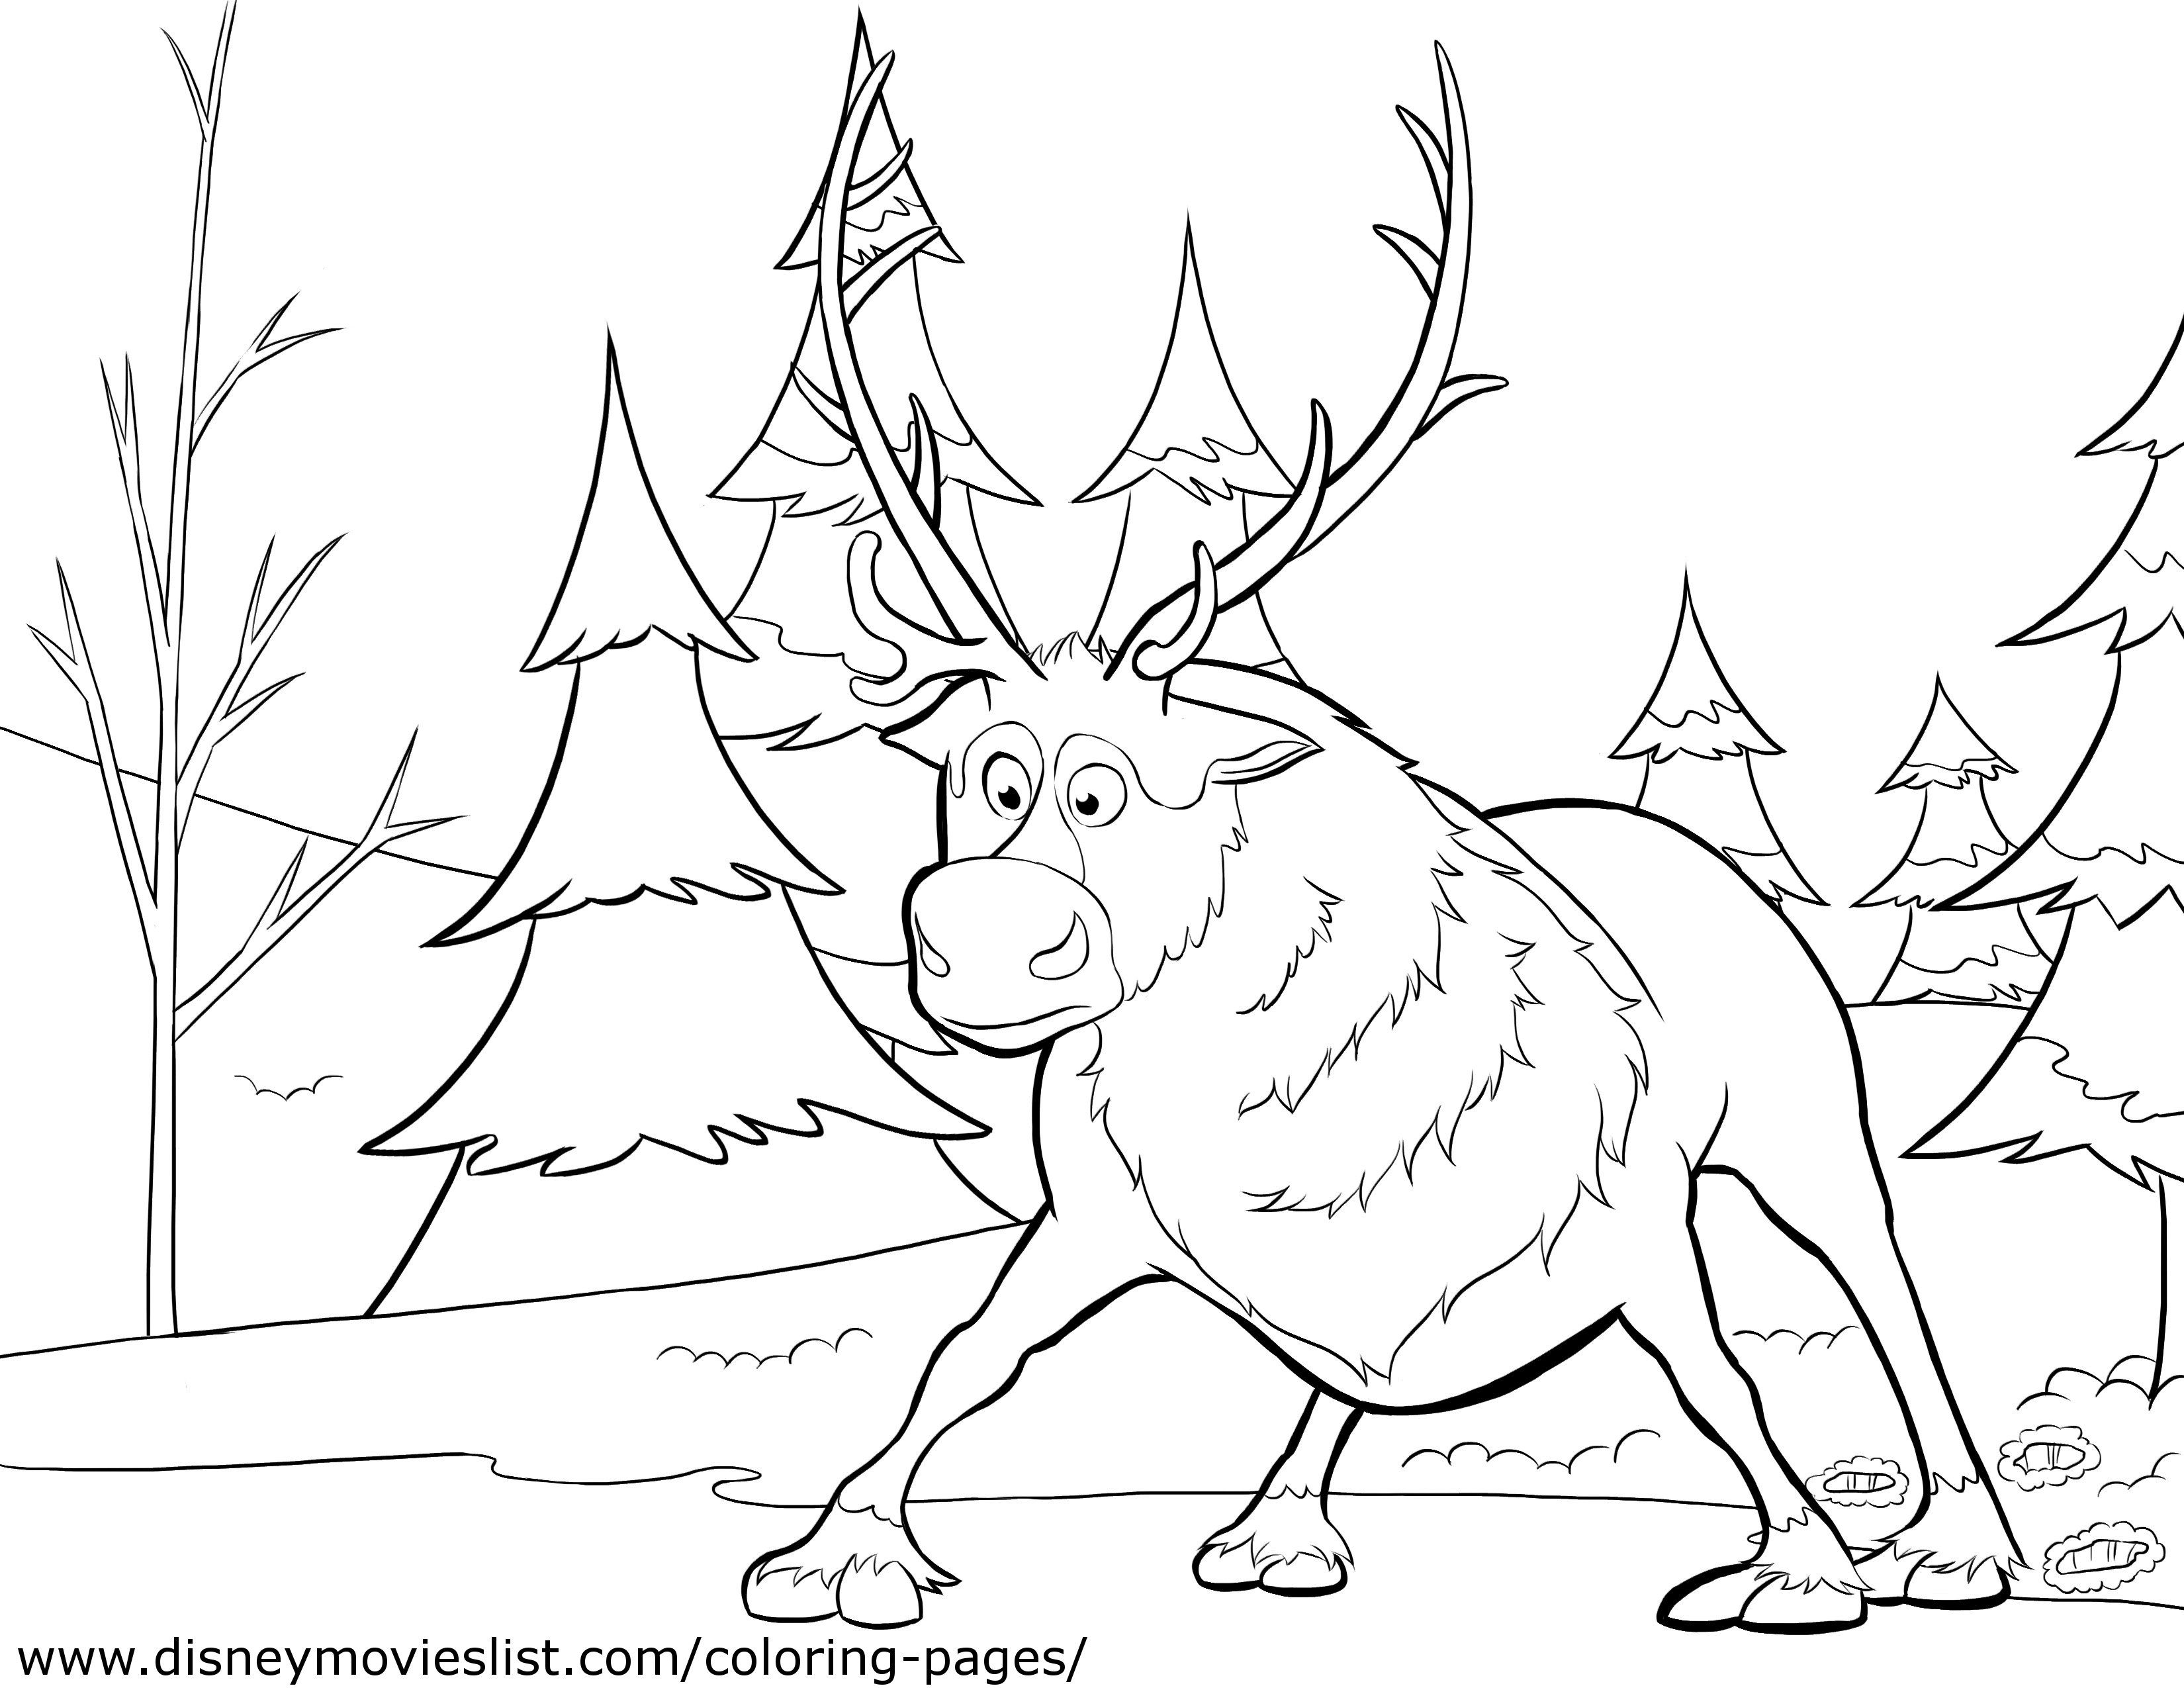 Frozen Coloring Pages A4 Printable Coloring Pages Pinterest